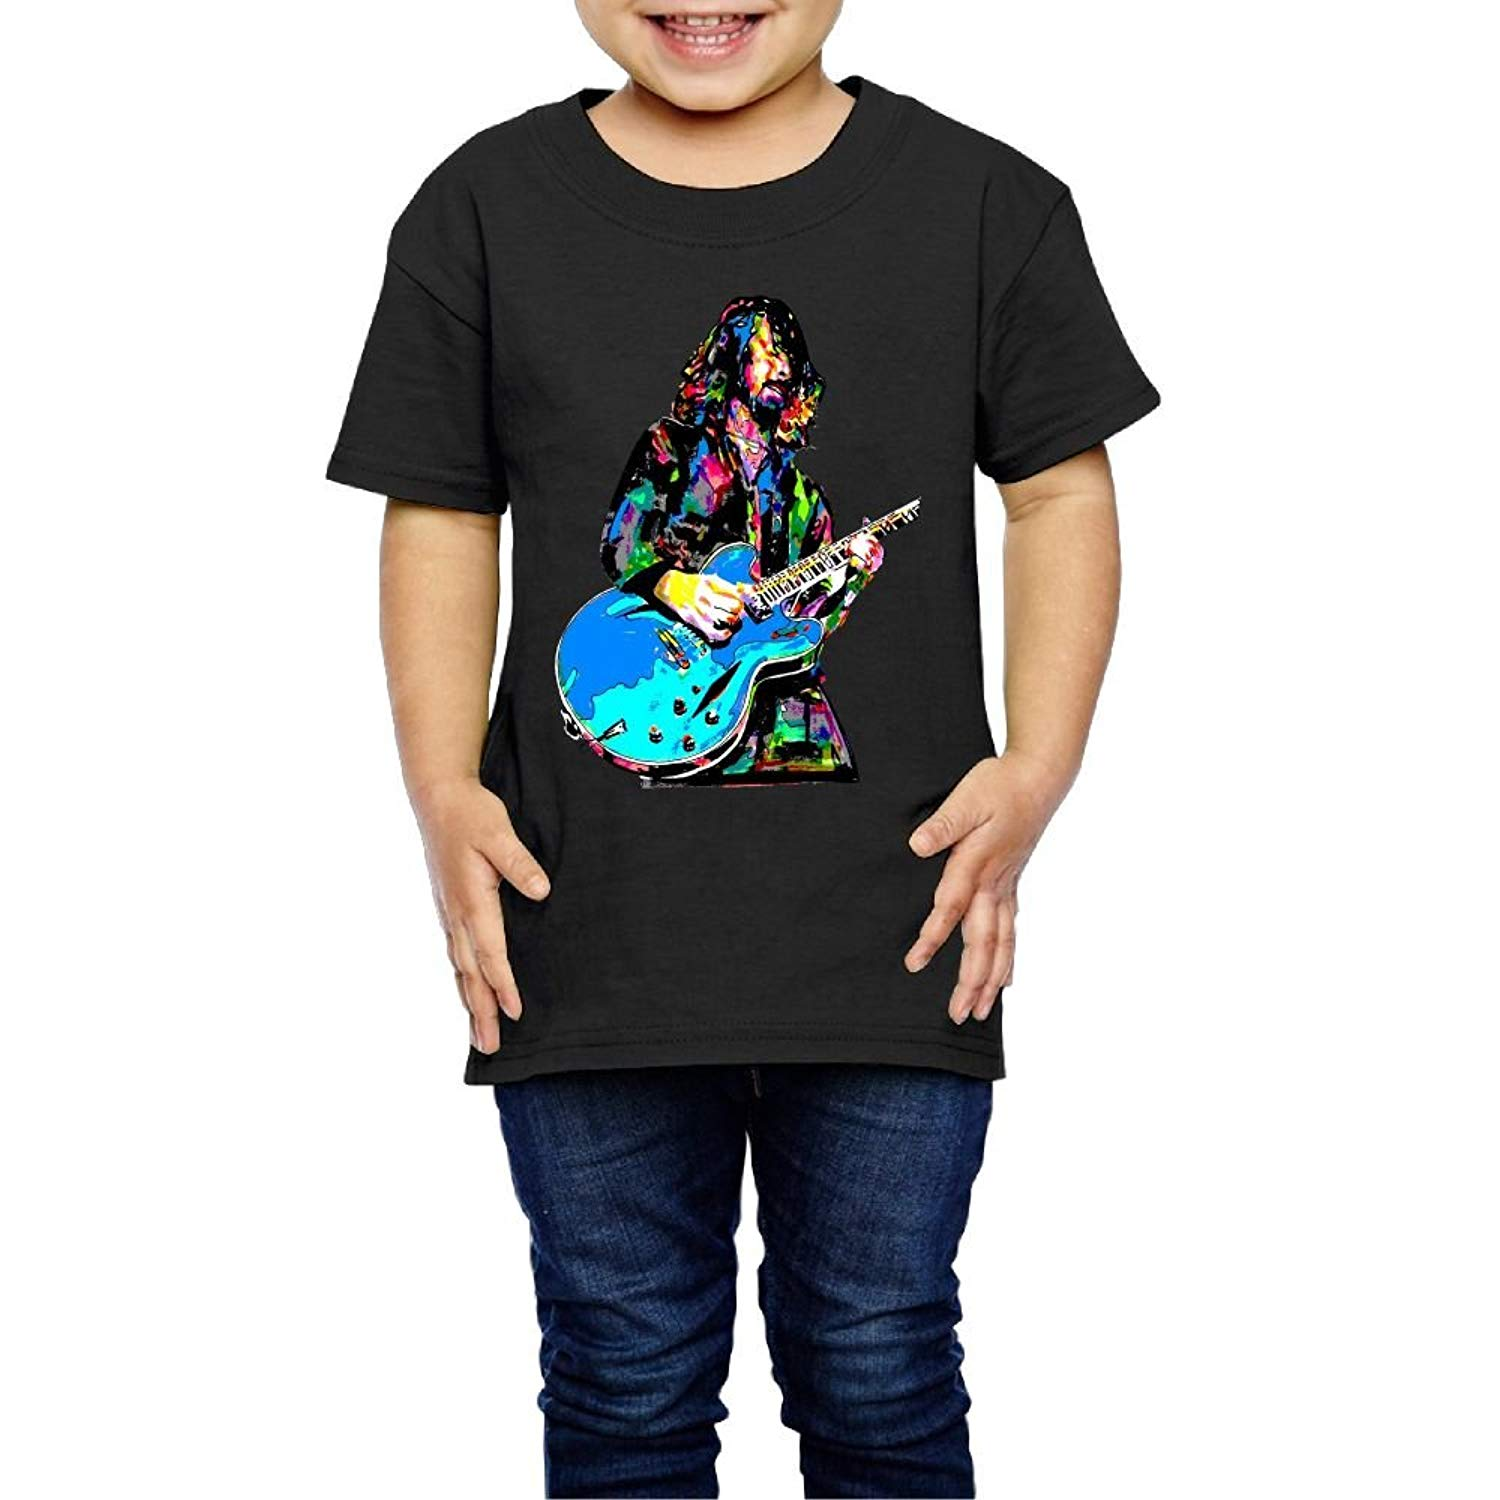 Gilles Foo Fighters Fashion Tees For Girls 5 6 Shirts